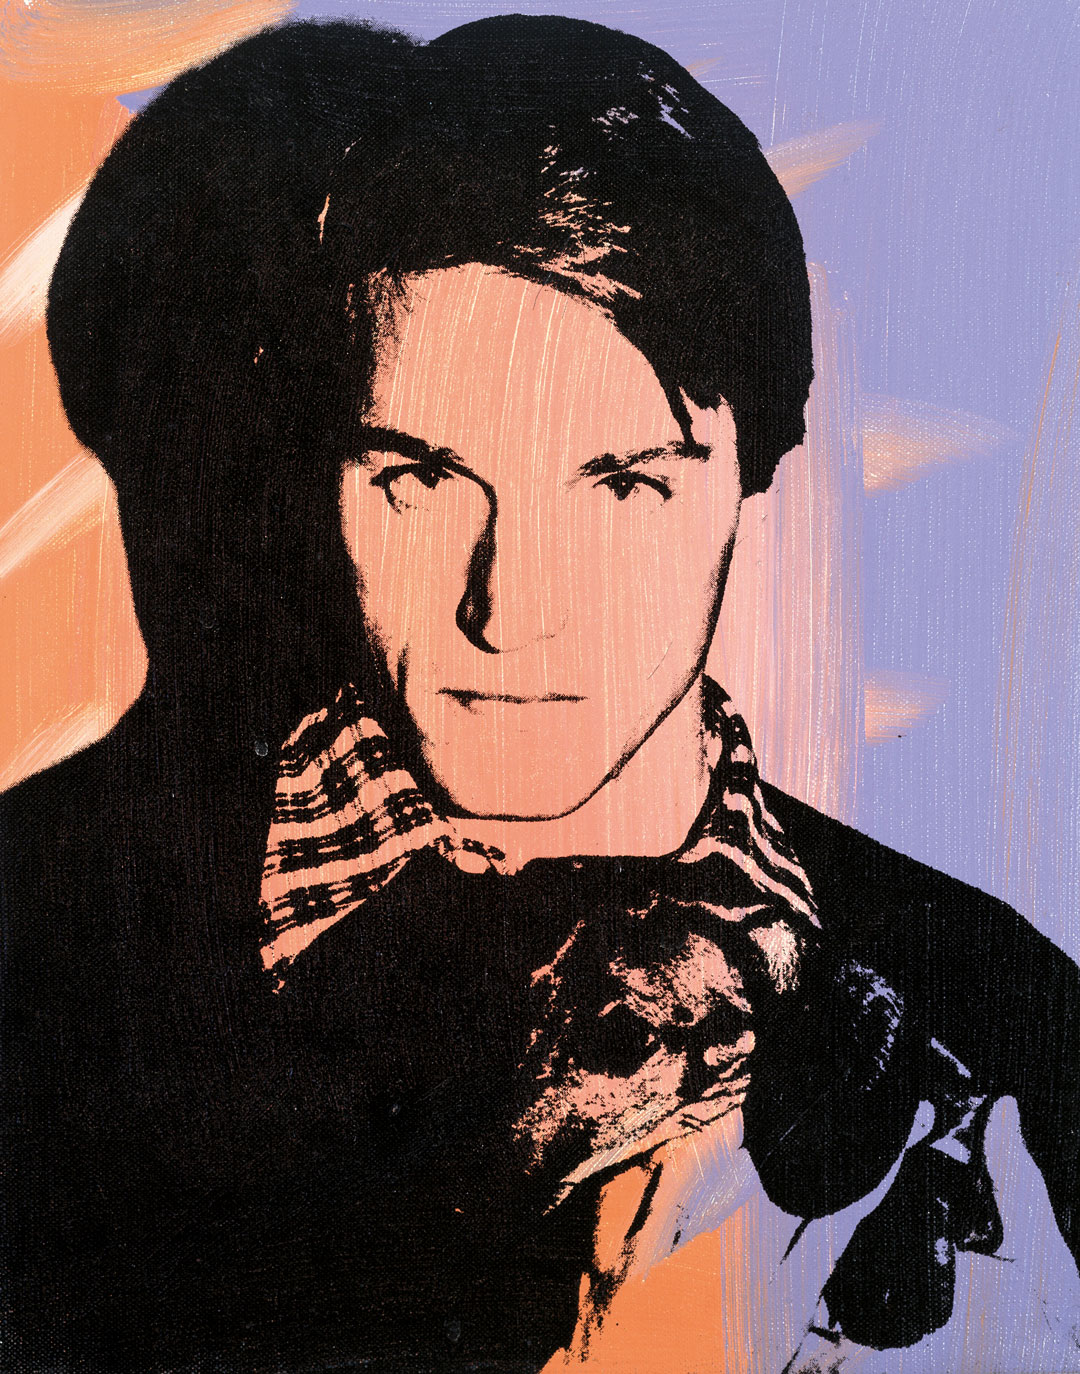 Andy Warhol, Jed Johnson, ca. 1978, acrylic and silkscreen ink on linen, 14 x 11 inches, 35.6 x 27.9 cm. Picture credit: The Andy Warhol Museum, Pittsburgh; Founding Collection, Contribution The Andy Warhol Foundation for the Visual Arts, Inc. © The Andy Warhol Foundation for the Visual Arts, Inc., NY, Photo by Kevin Ryan